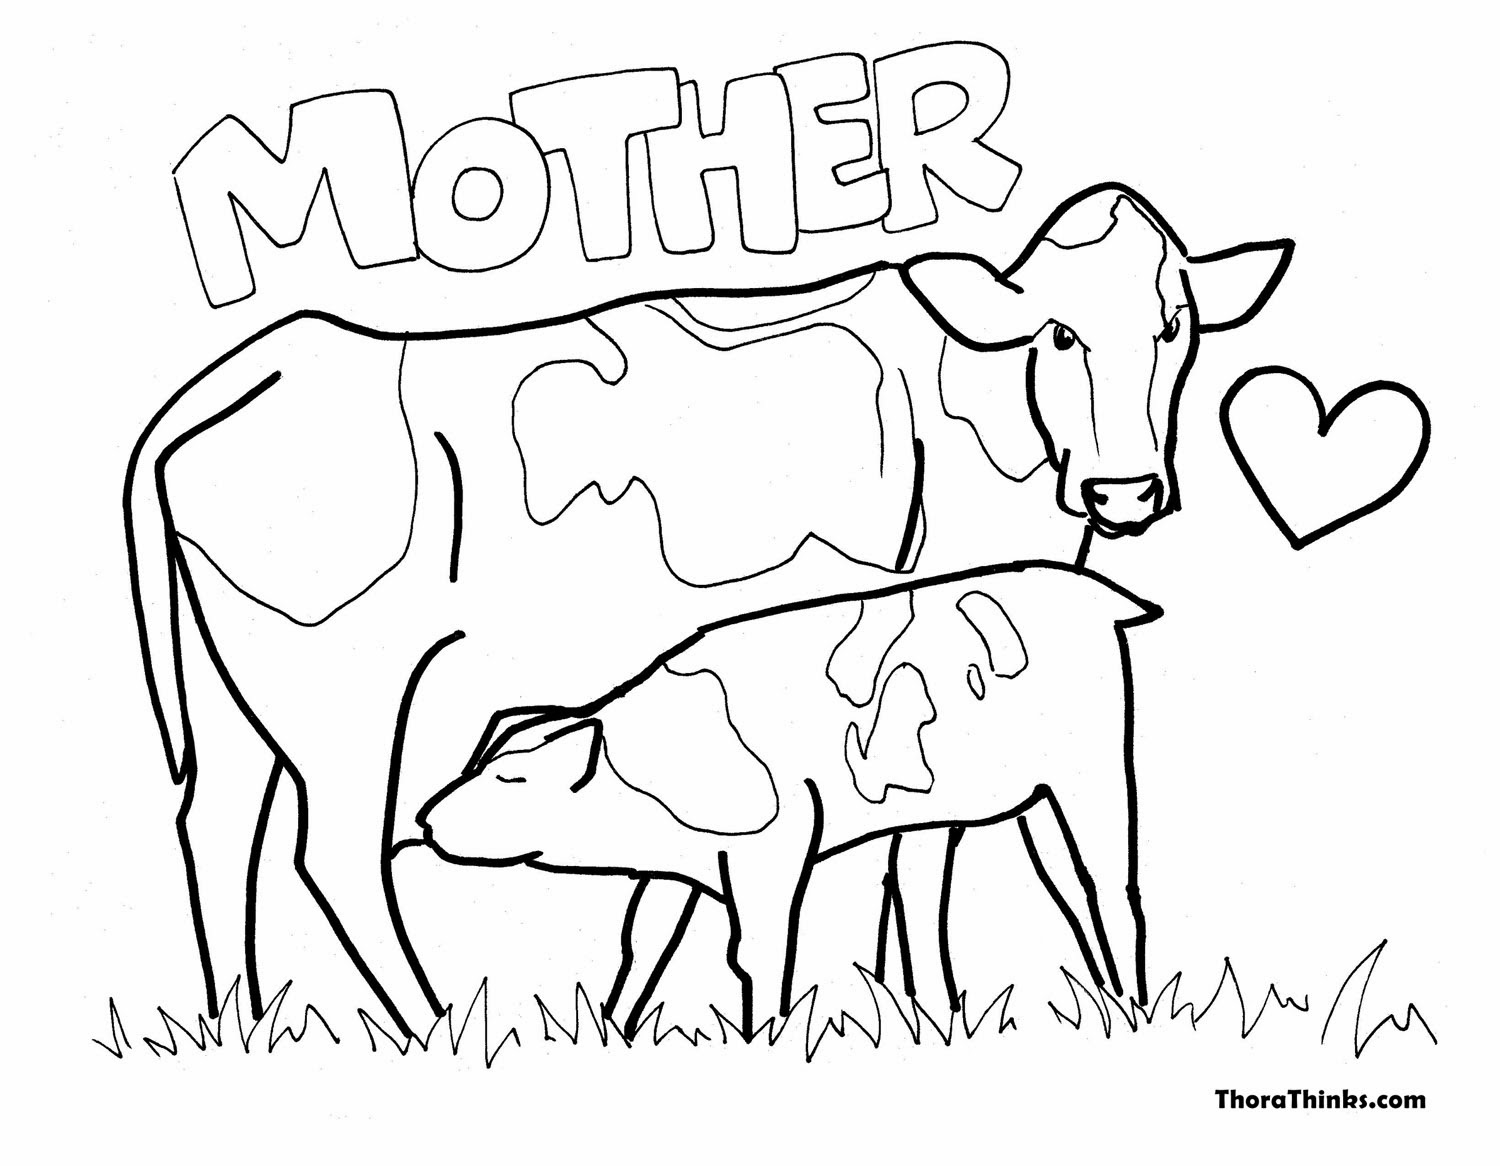 Coloring pages cow - Coloring Pages Cow 53